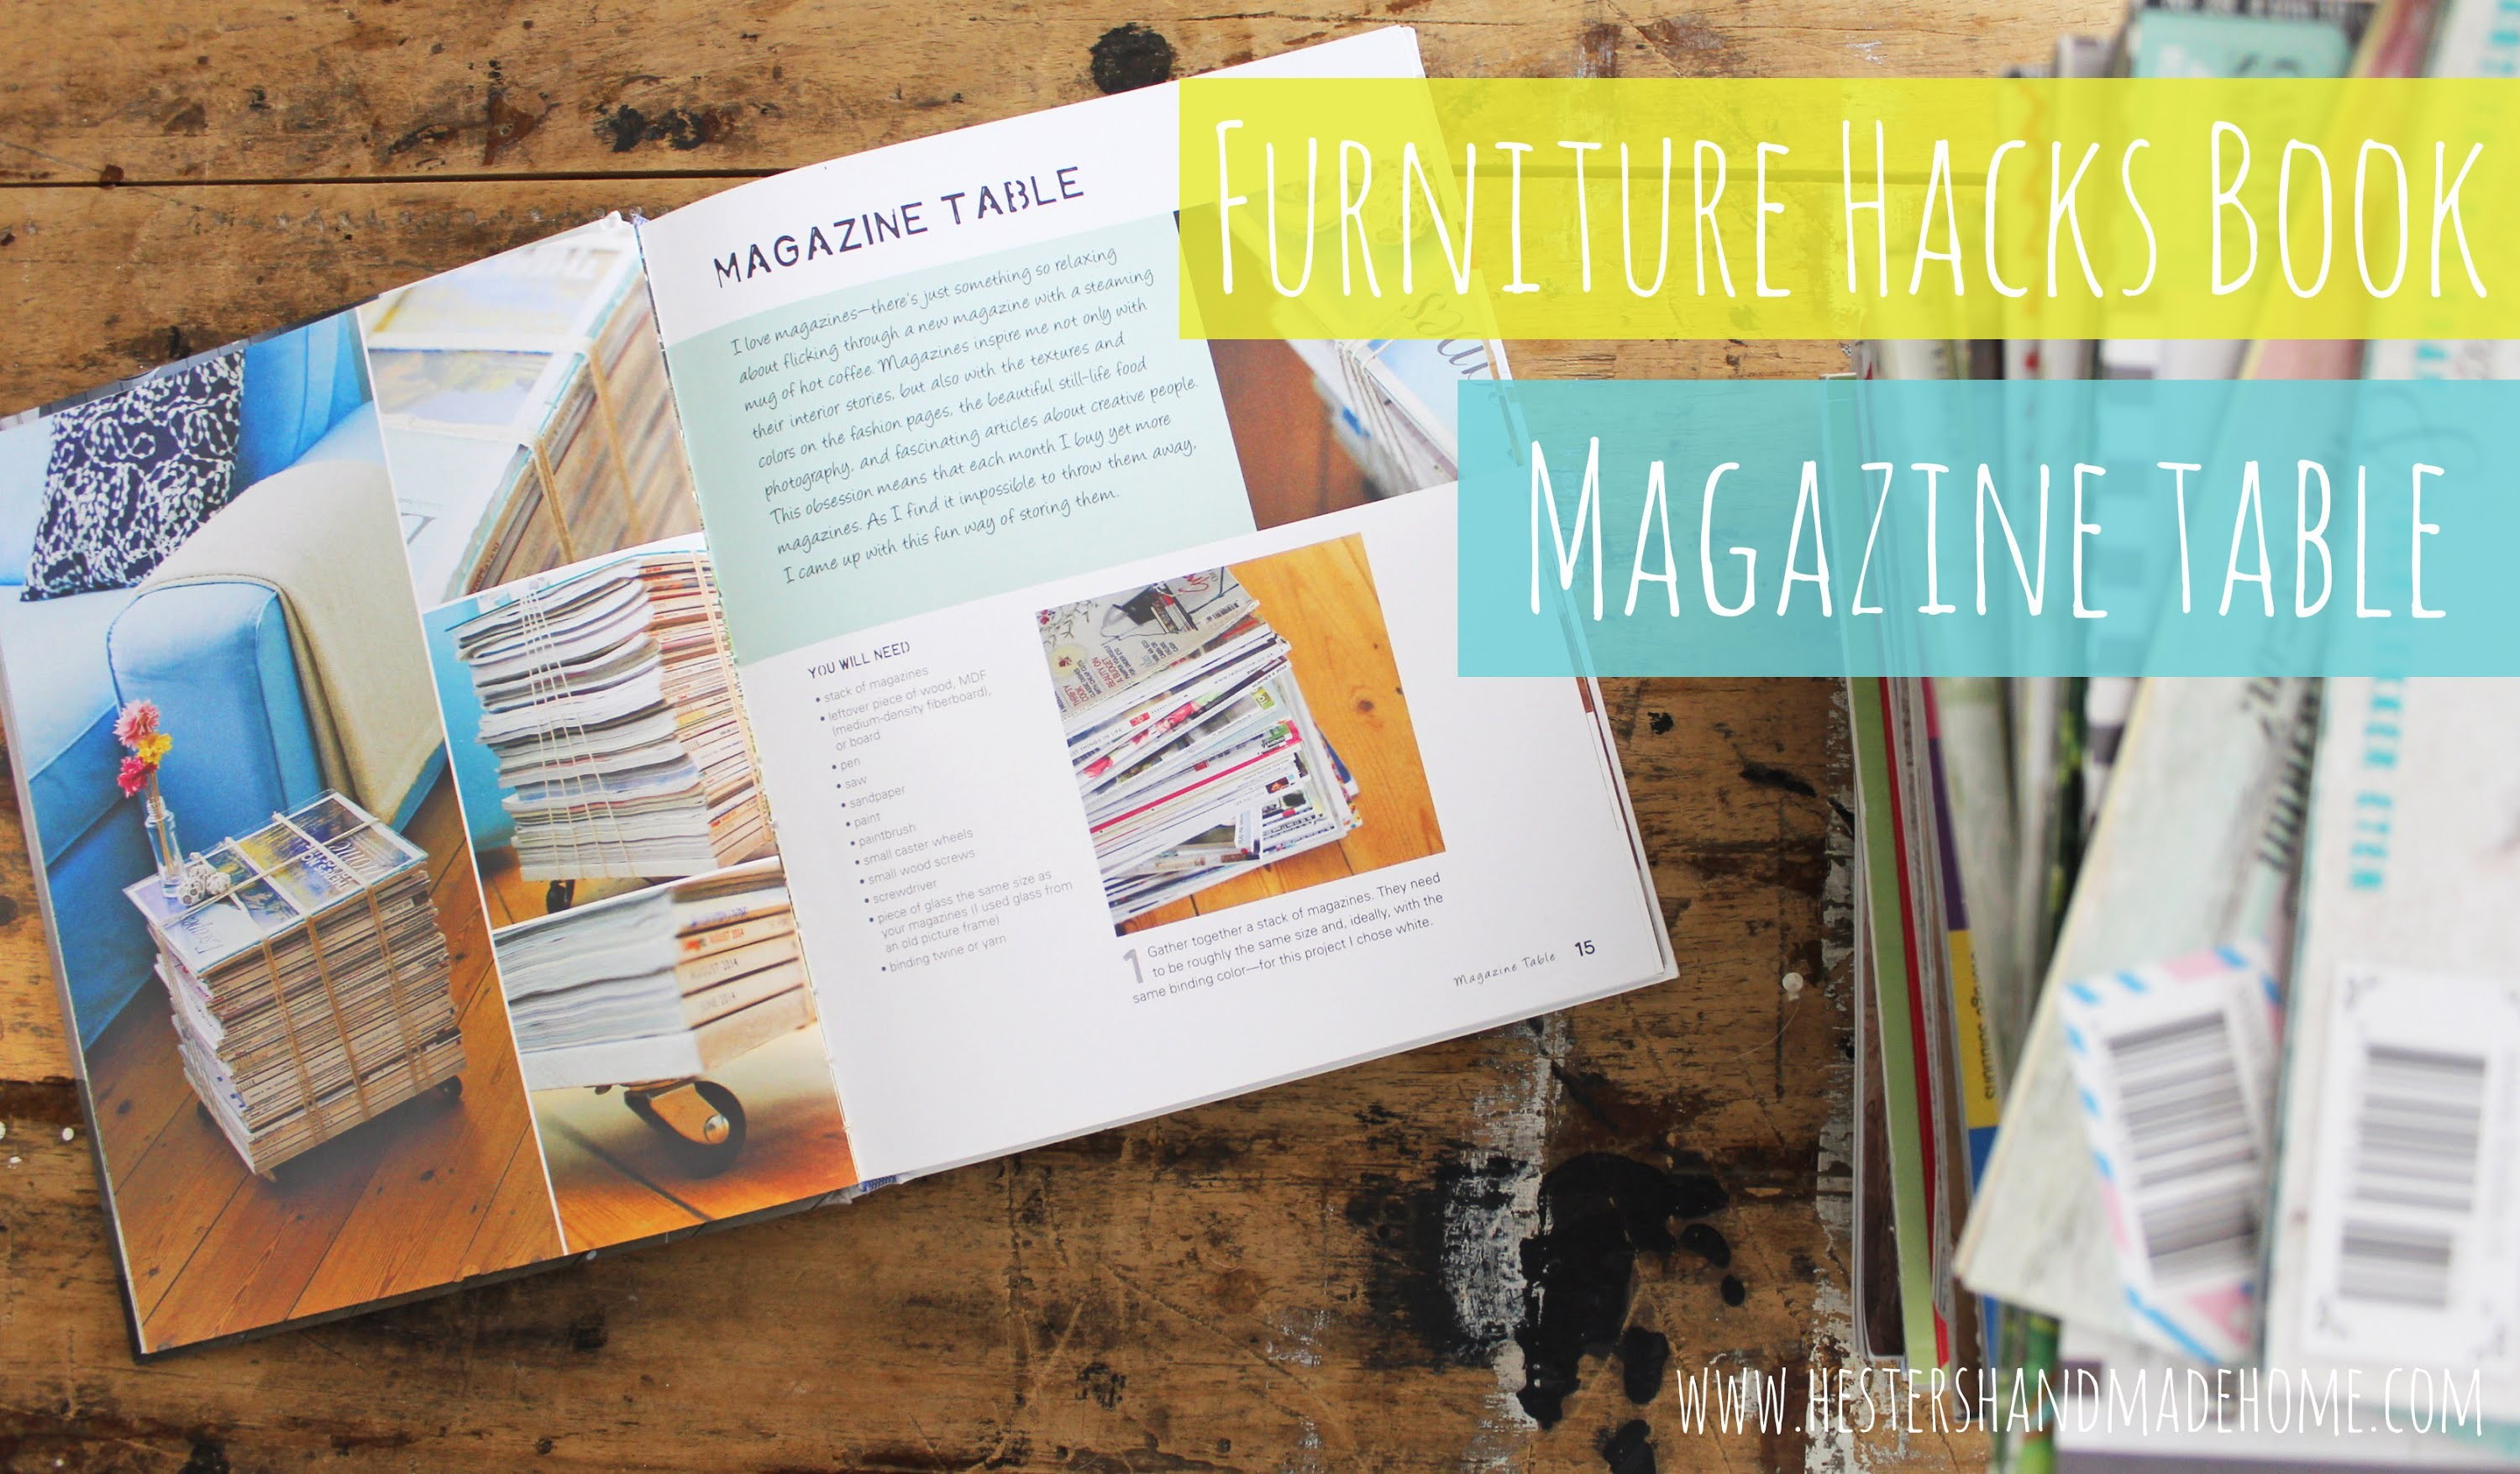 DIY How to make a Magazine Table with Hester van Overbeek